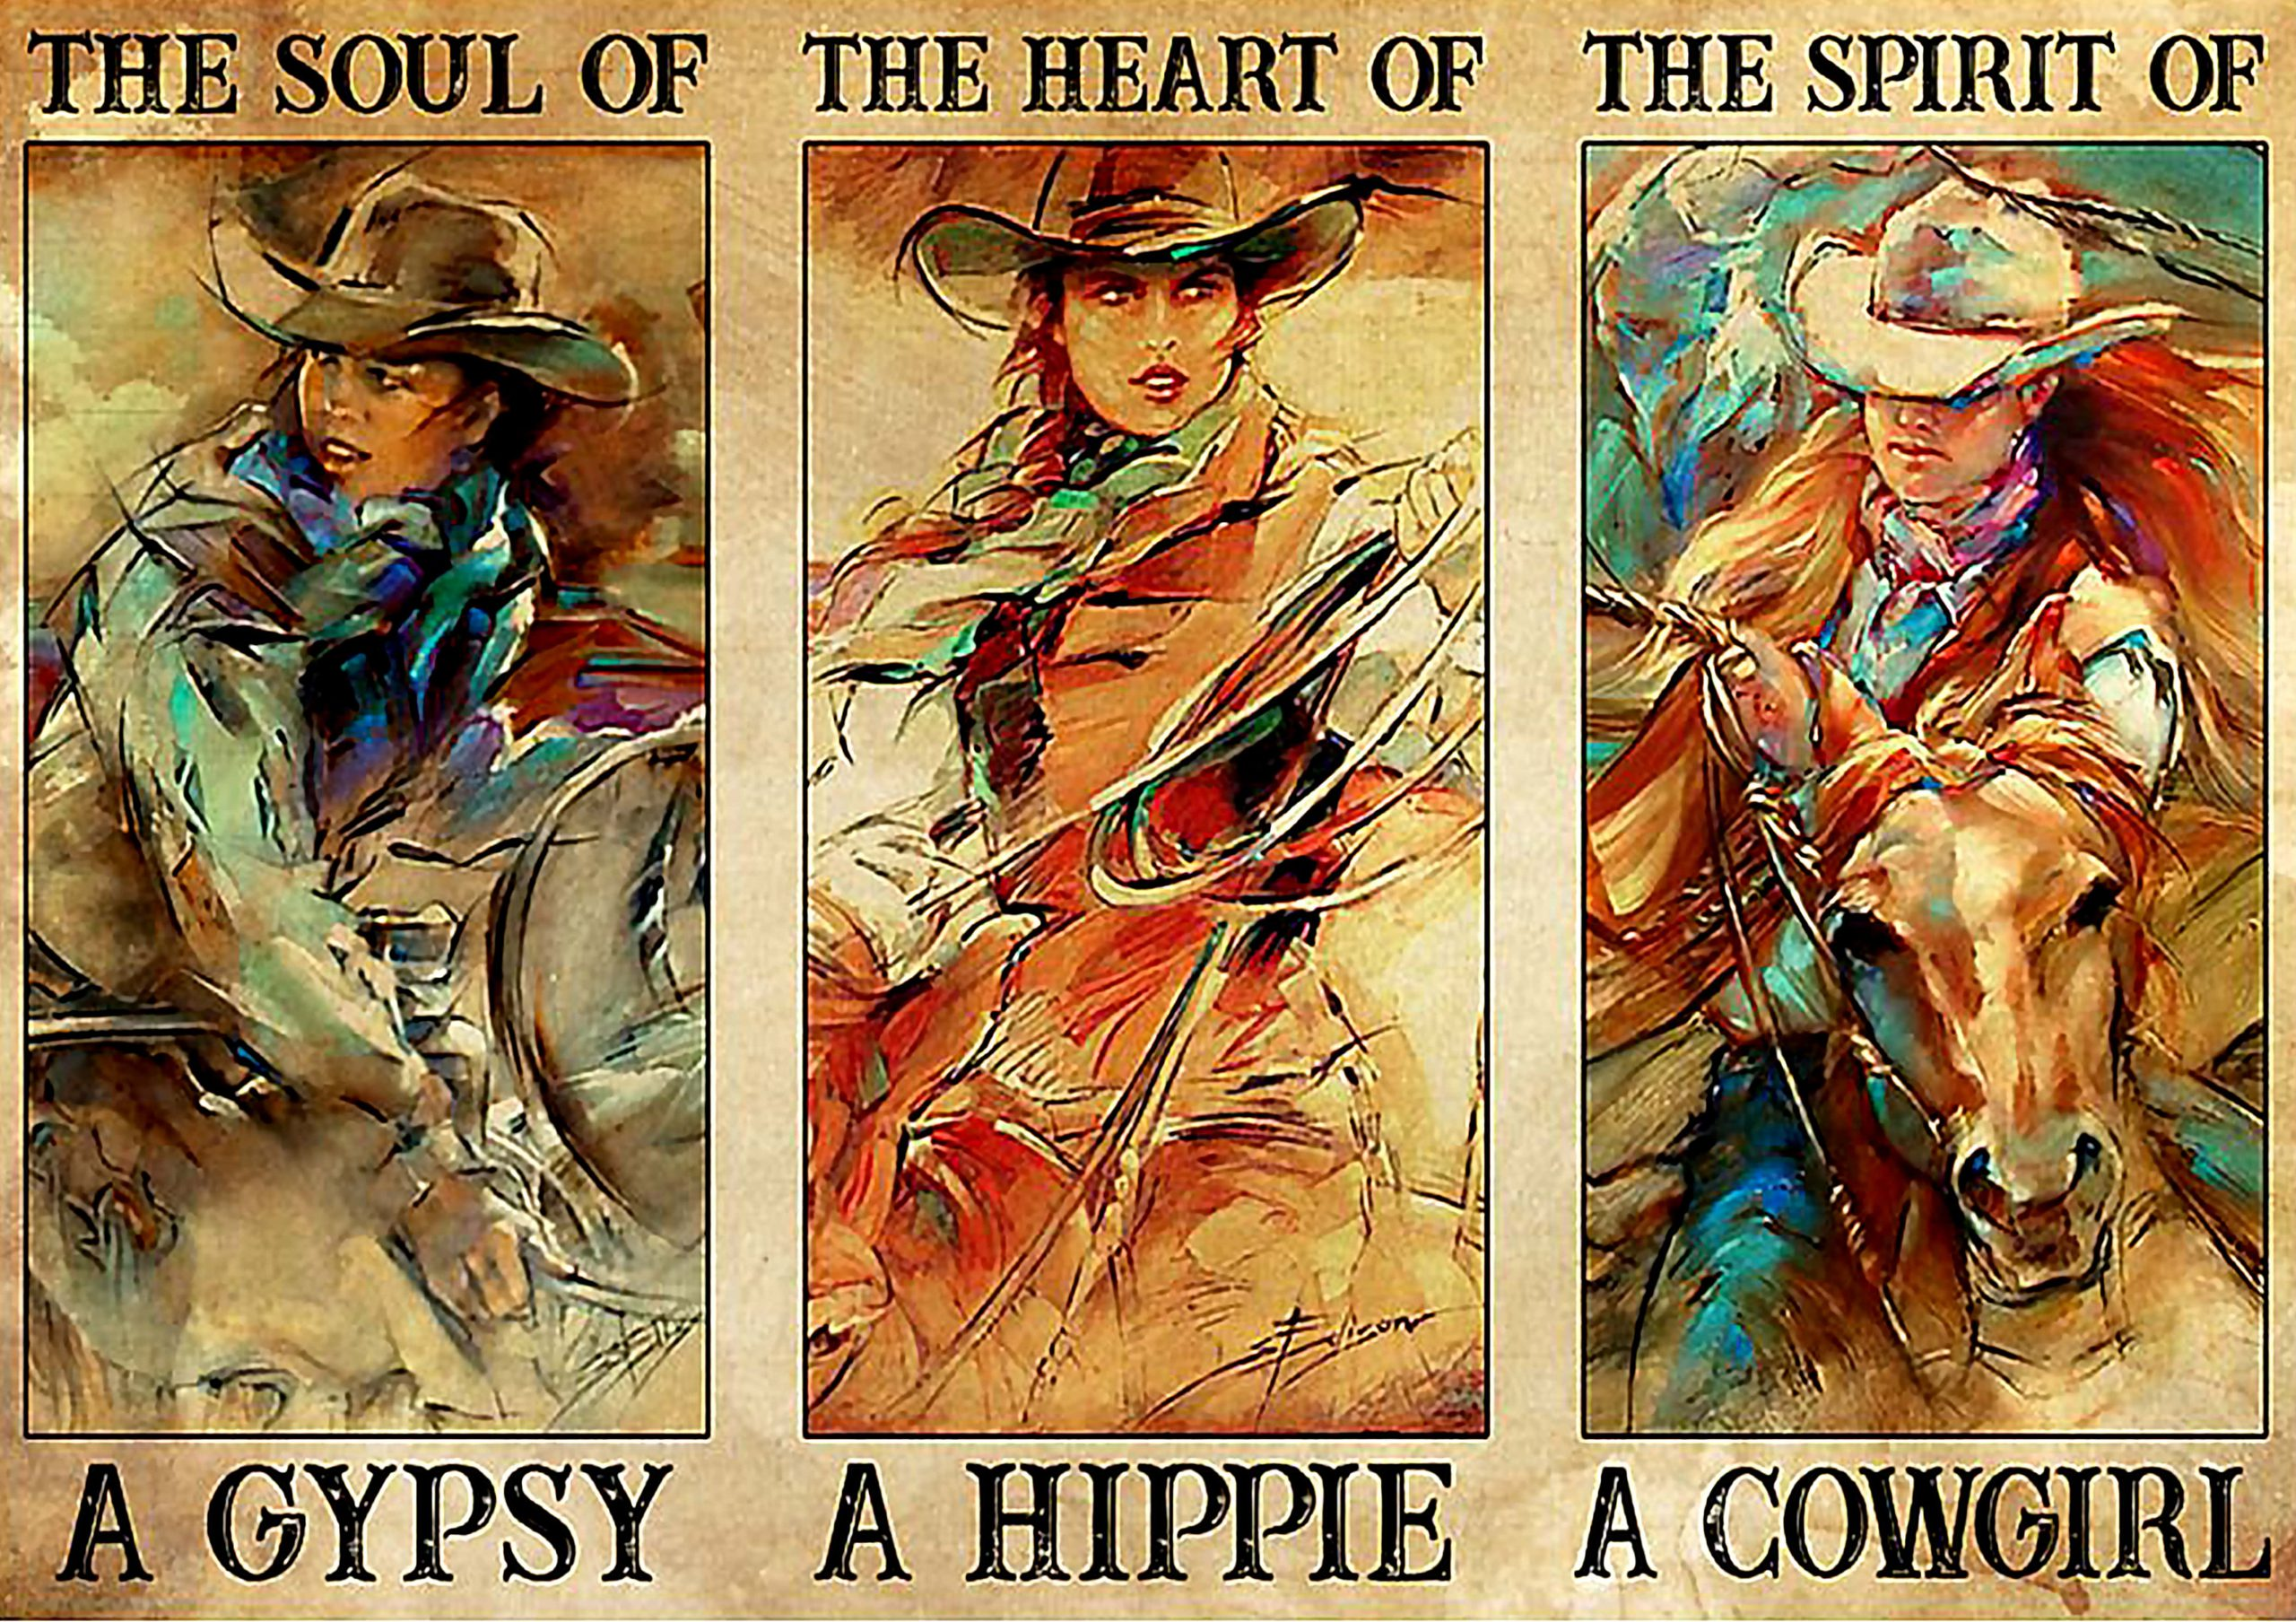 vintage the soul of a gypsy the heart of a hippie the spirit of a cowgirl poster 1 - Copy (3)